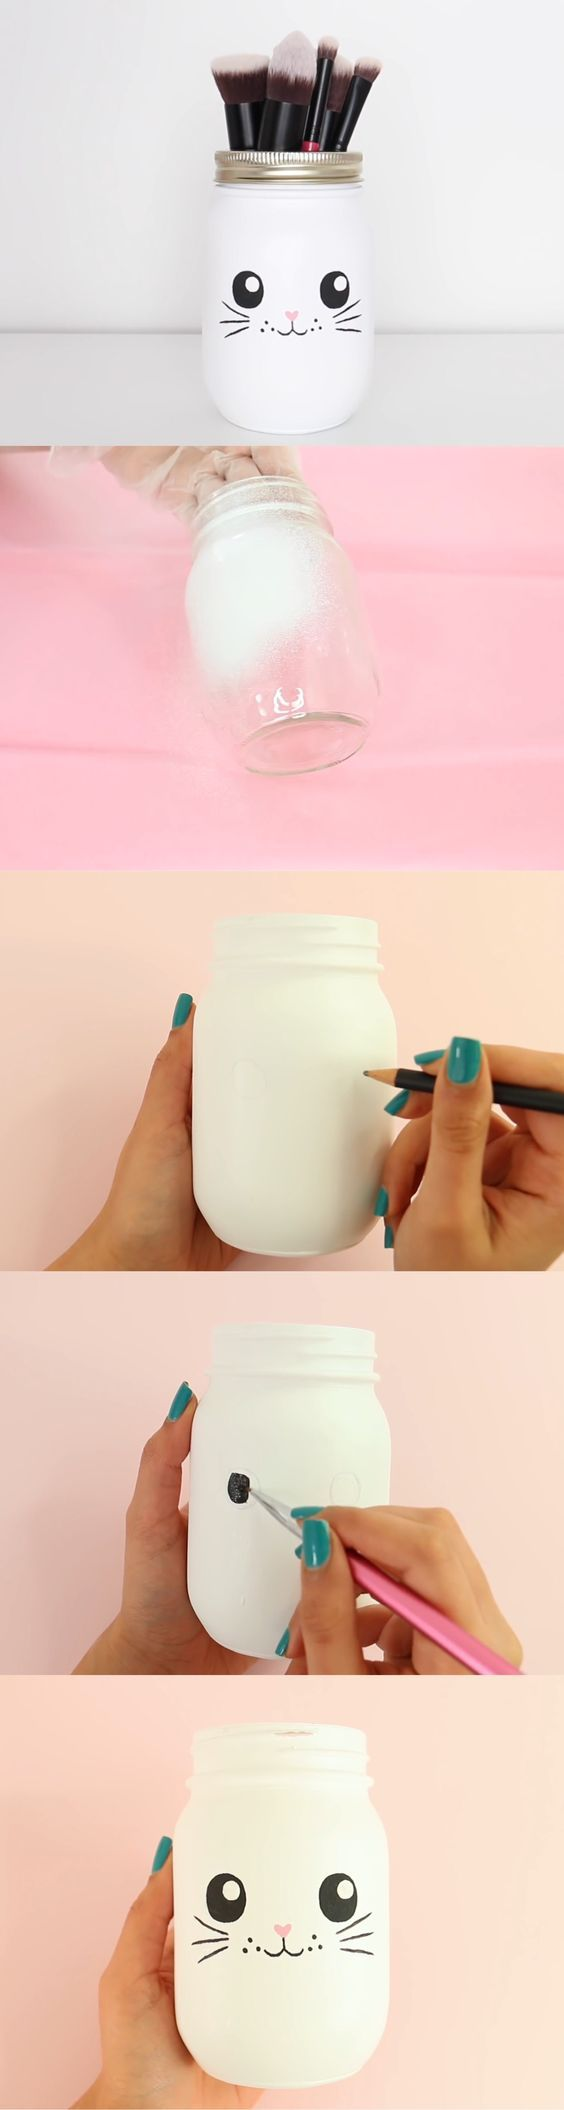 Nim C's mason jar container DIY tutorial